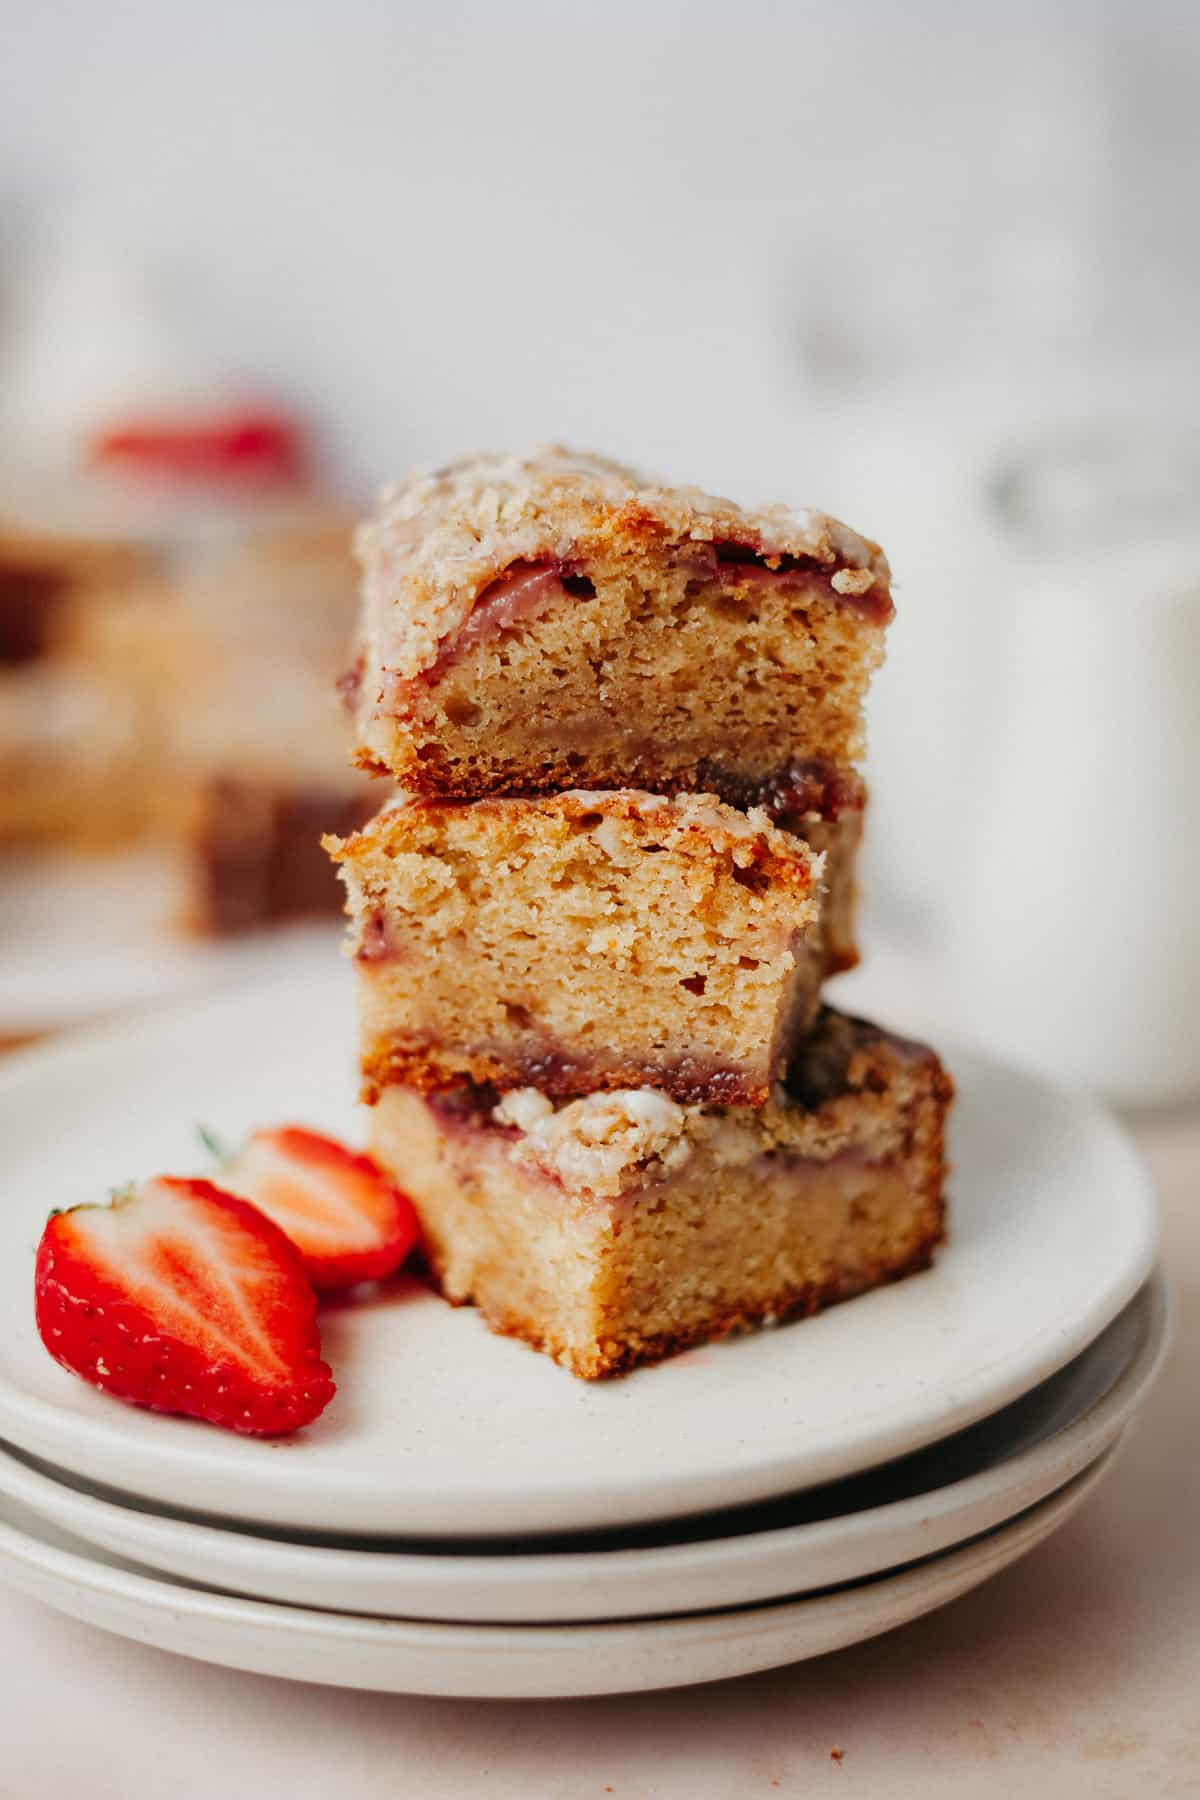 Three slices of strawberry crumble cake stacked on top of each other. It is on top of a small stack of beige plates